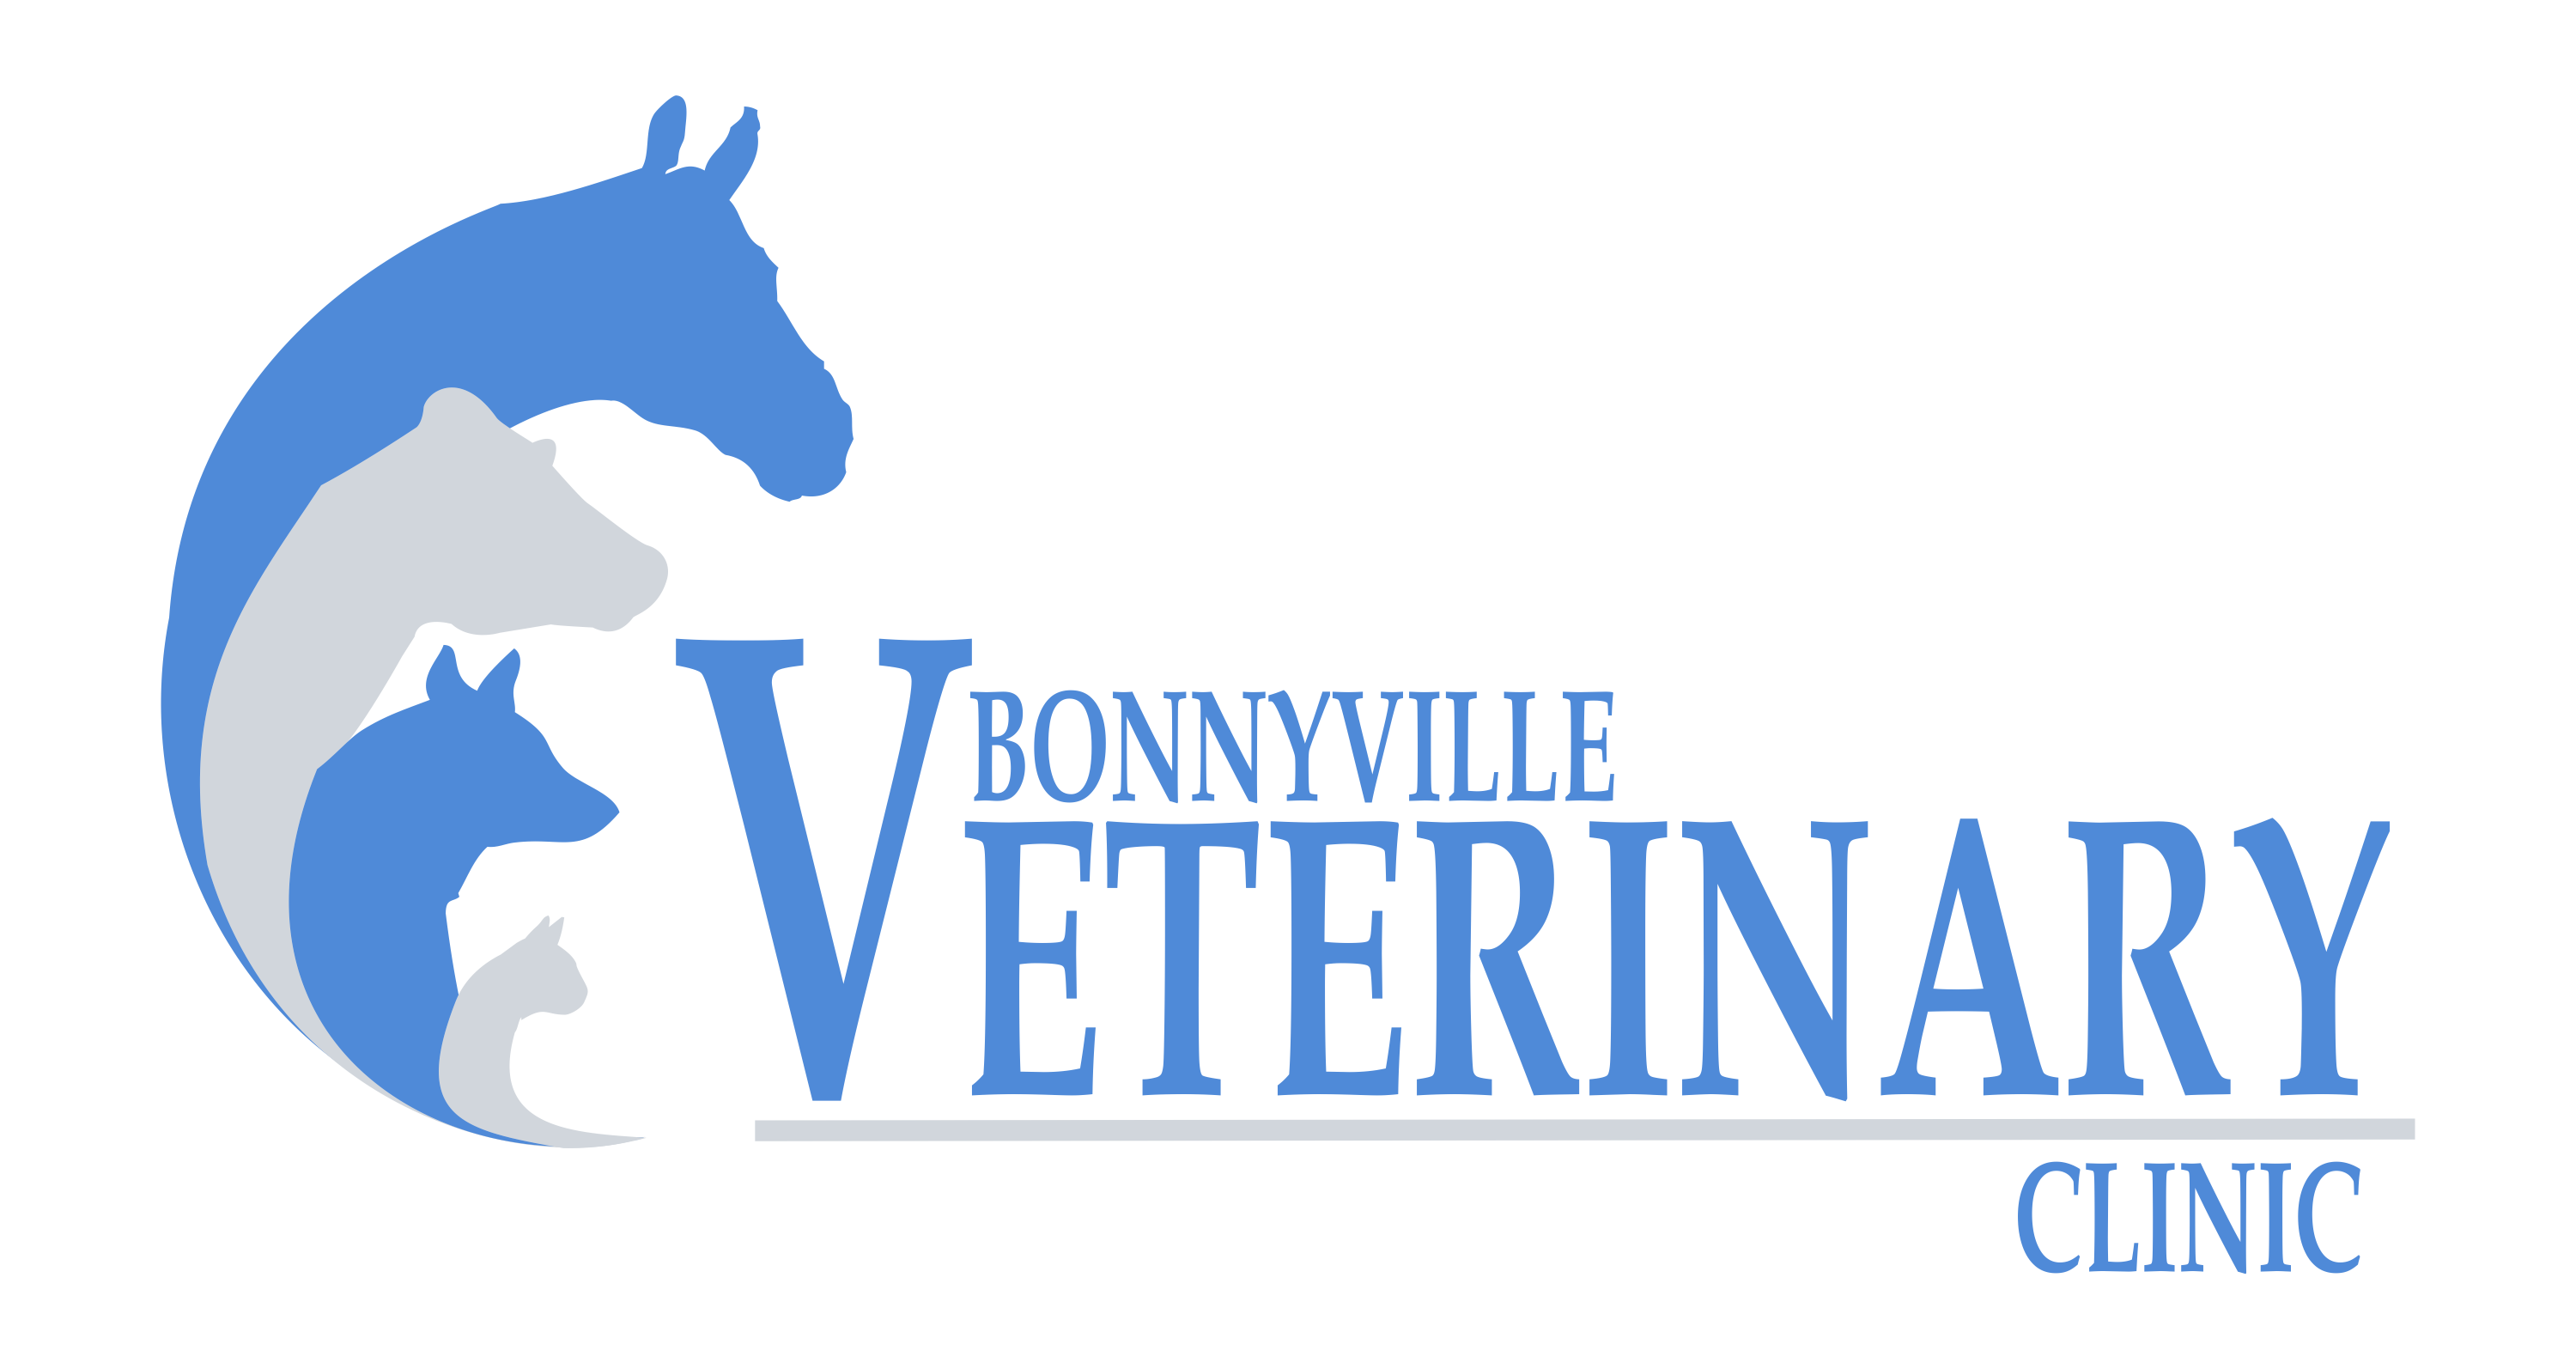 Bonnyville Veterinary Clinic